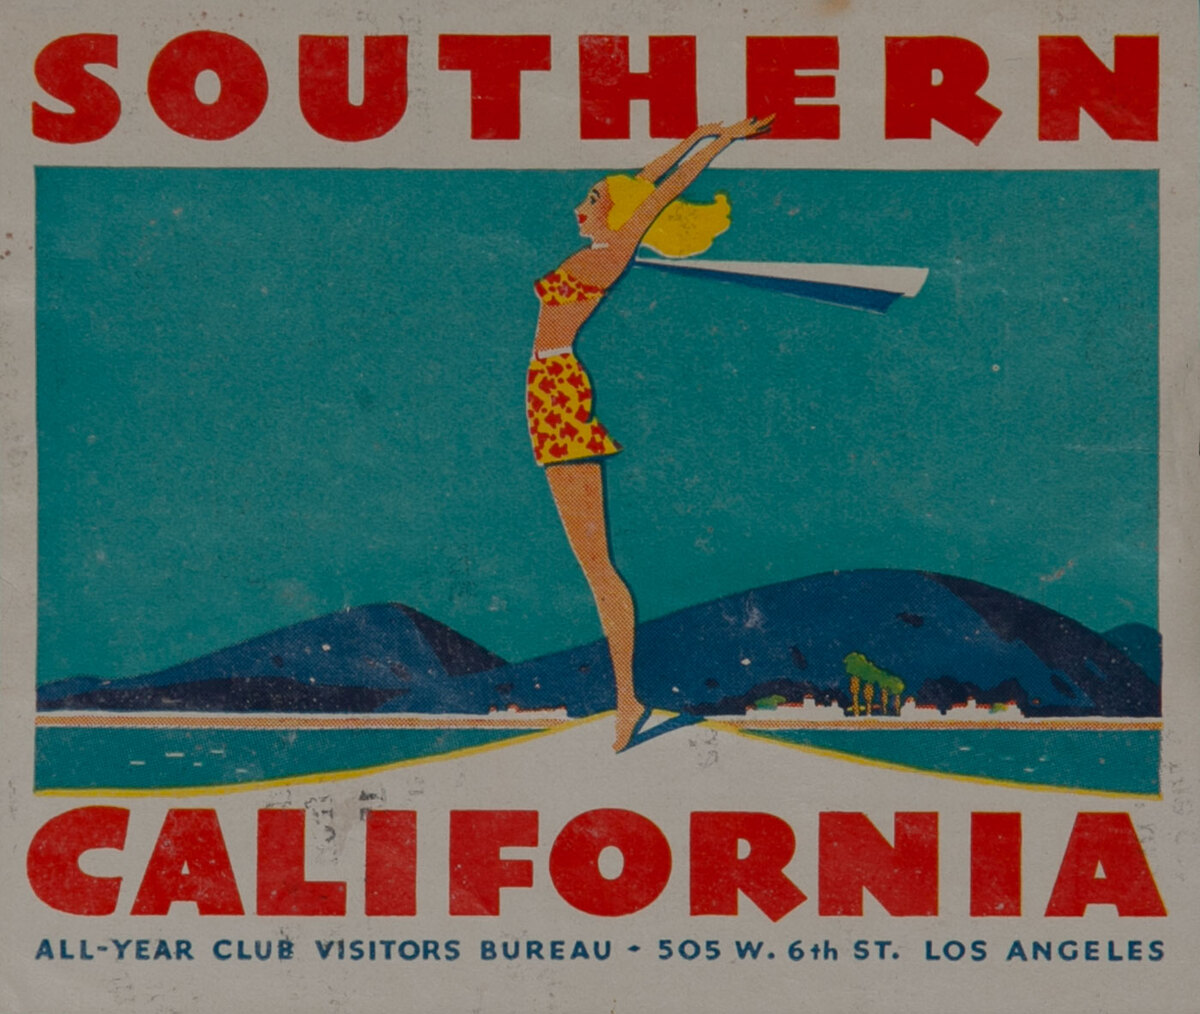 Southern California Luggage Label